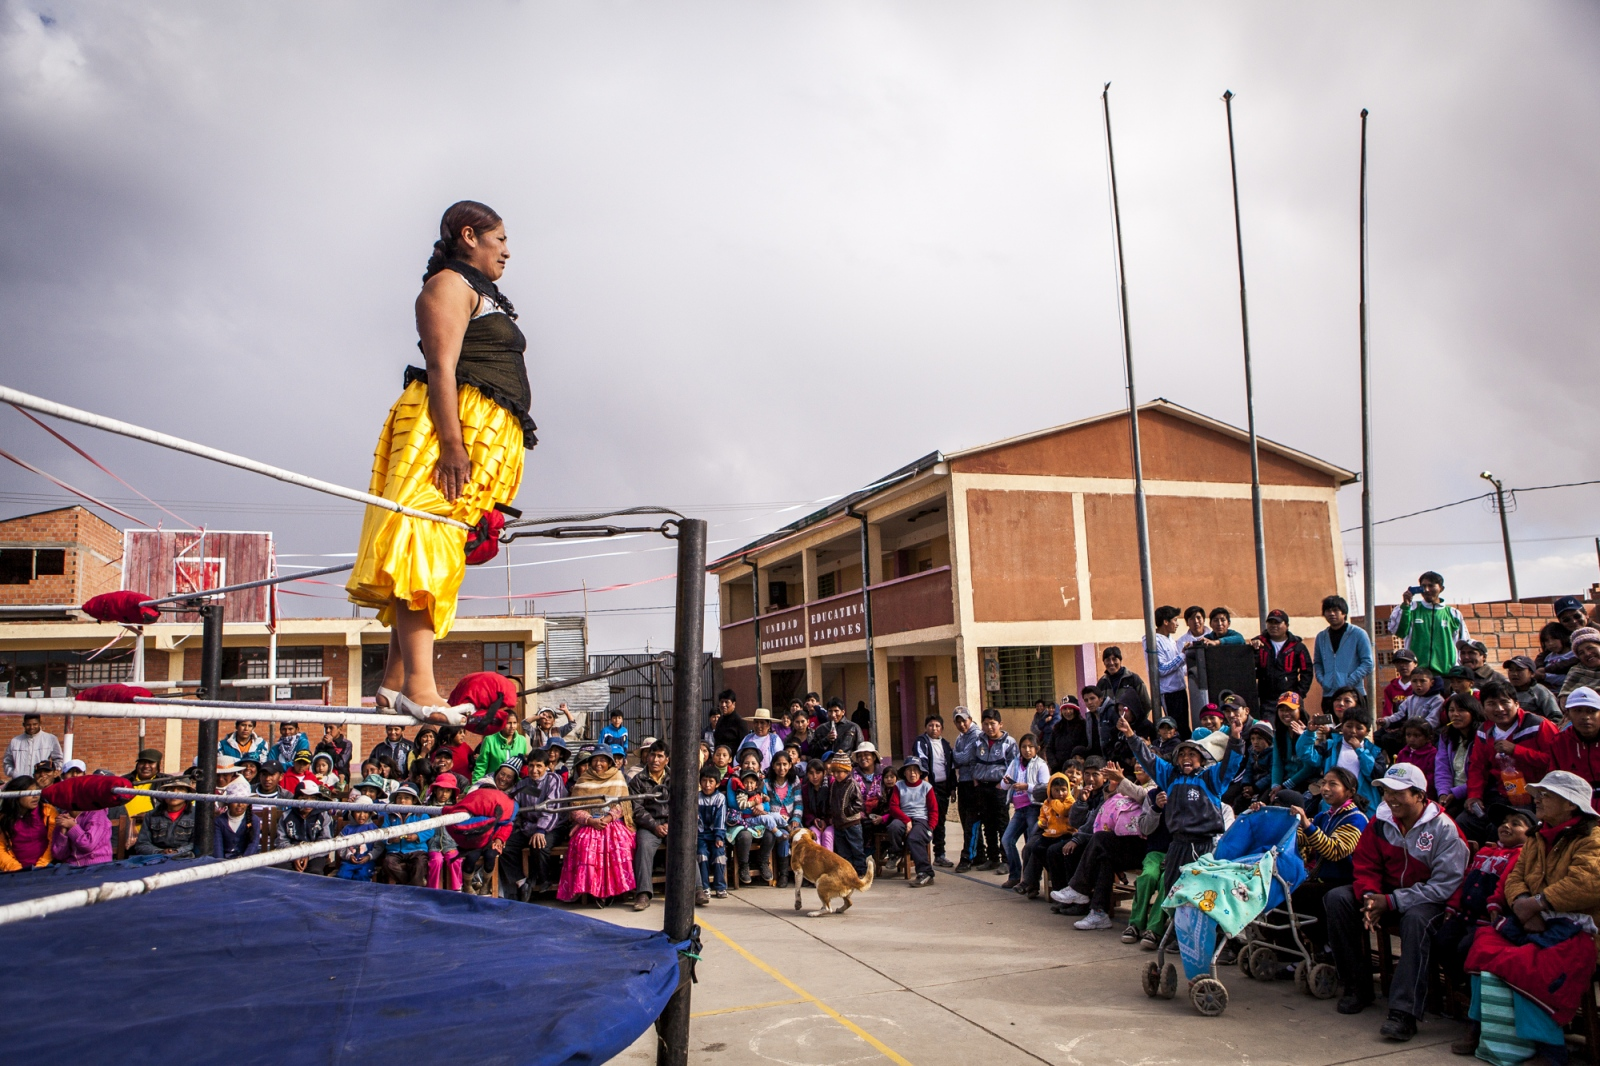 Silvina La Poderosa, 37, looks to the public on top of the ropes during an exhibition fight in Senkata. They sometimes do exhibition fights in different locations of Bolivia to promote and attract younger people to the sport.